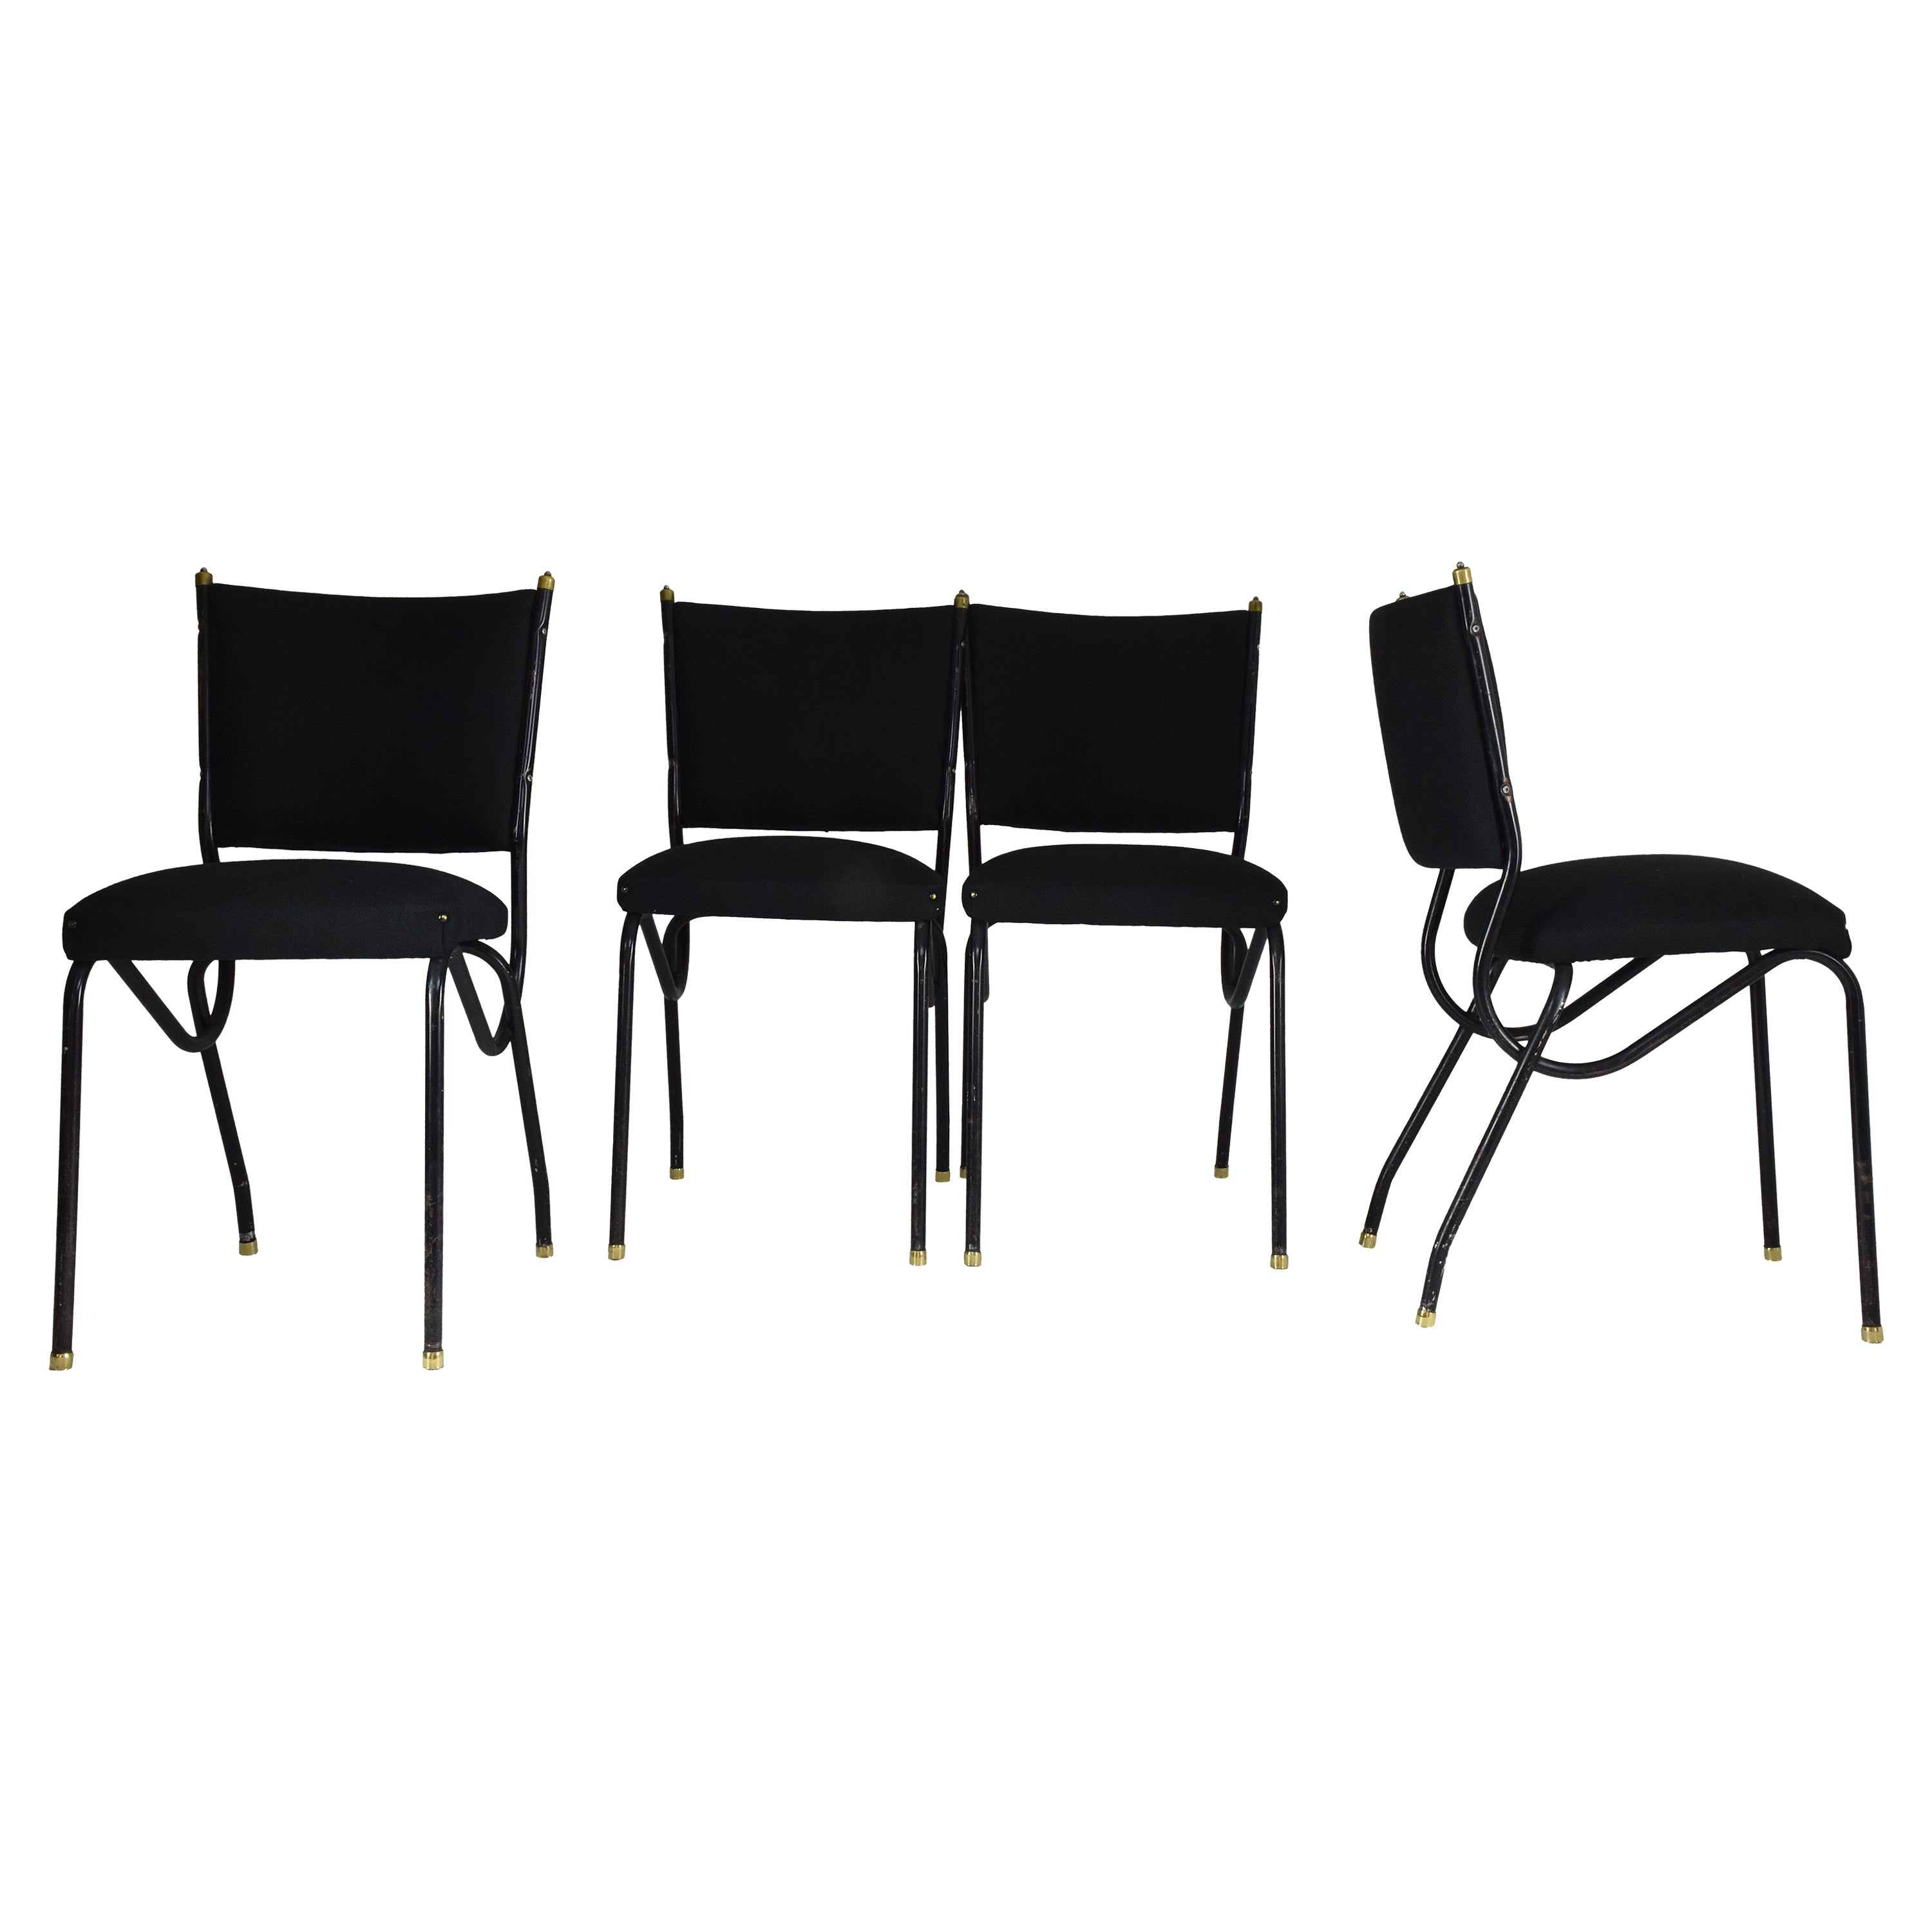 20th Century Italian BBPR Style Dining Chairs, Set of 4, 1950s